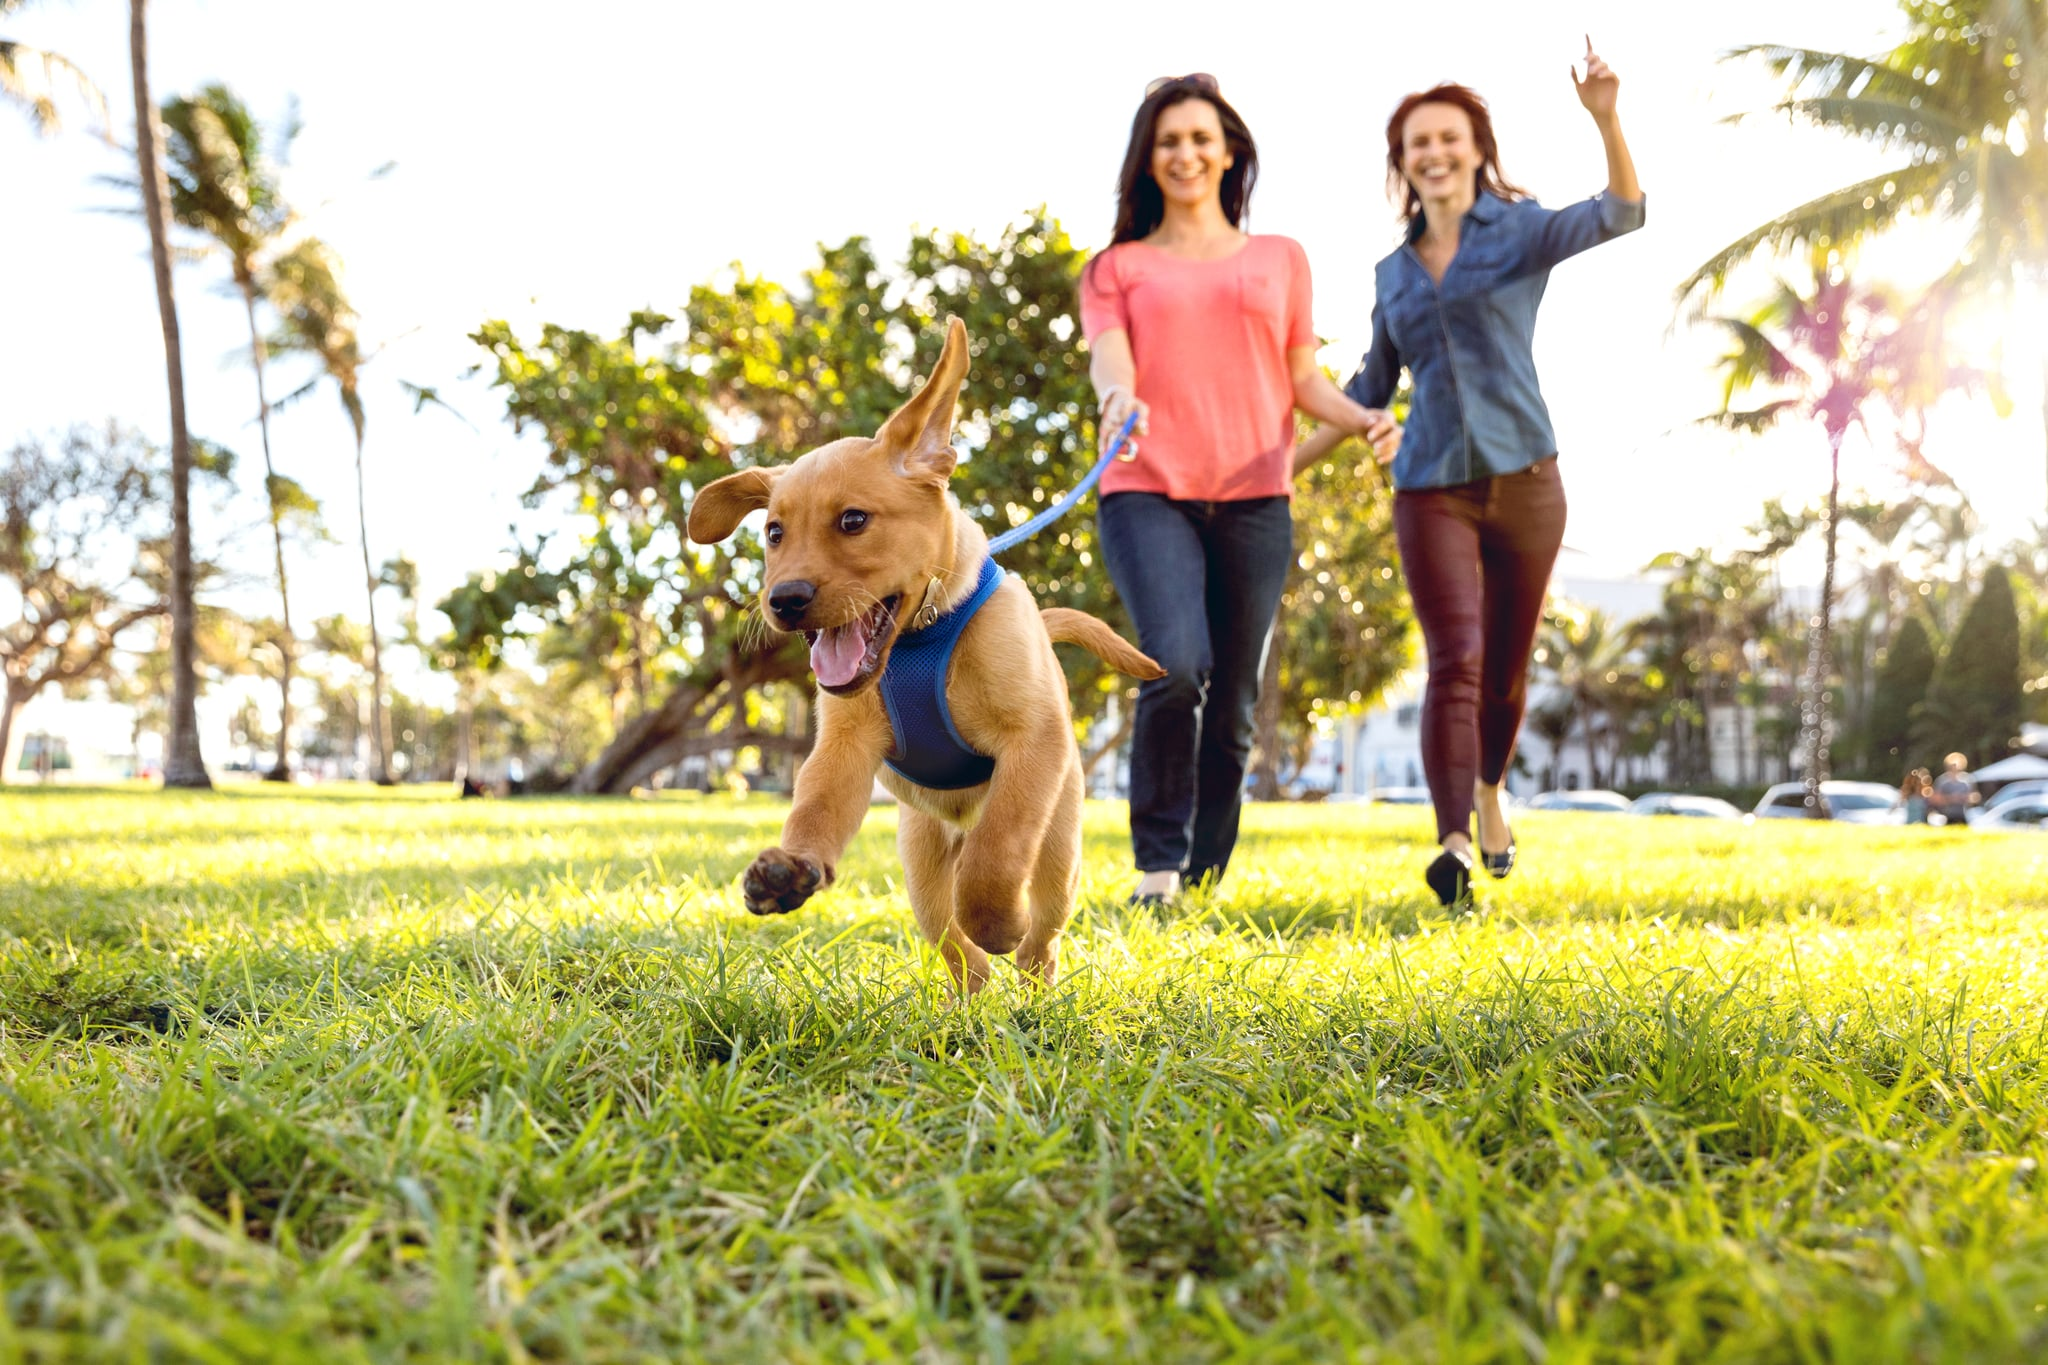 Give Your Dog Some Belly Rubs, Because a Study Confirmed That Dog Owners Get More Exercise